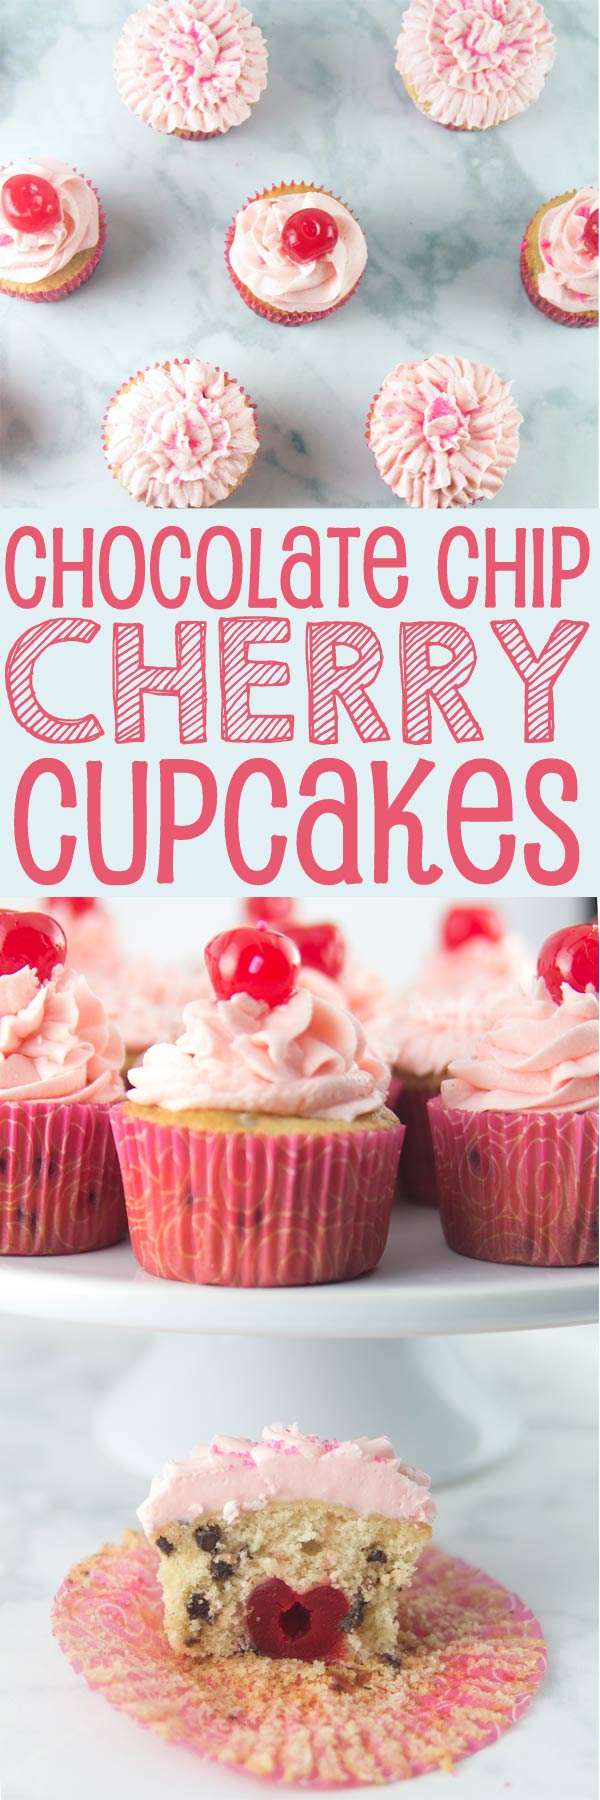 Chocolate Chip Cherry Cupcakes: vanilla-speckled cupcakes studded with mini chocolate chips and a pile of fluffy cherry buttercream. Top with a cherry - or bake one right inside! {Bunsen Burner Bakery}